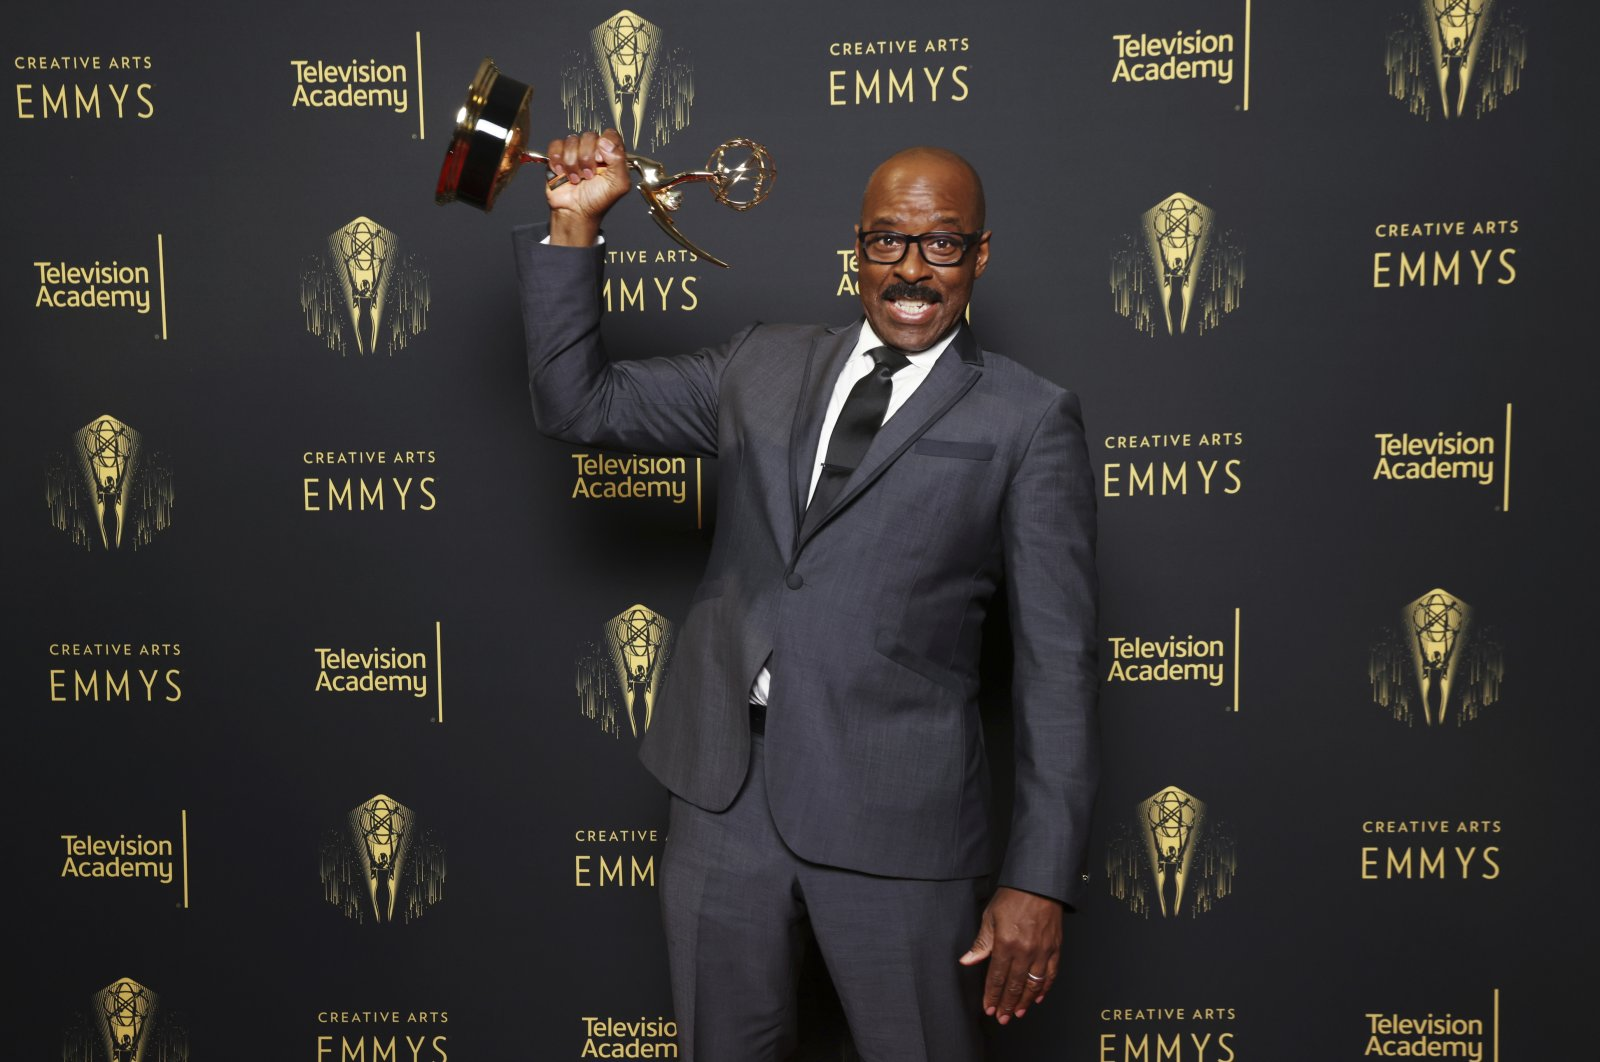 """Courtney B. Vance, winner of the Emmy for outstanding guest actor in a drama series for the """"Whitey's on the Moon"""" episode of """"Lovecraft Country,"""" poses for a portrait during the third ceremony of the Television Academy's 2021 Creative Arts Emmy Awards at the L.A. LIVE Event Deck on Sunday, Sept. 12, 2021, in Los Angeles. (AP Photo)"""